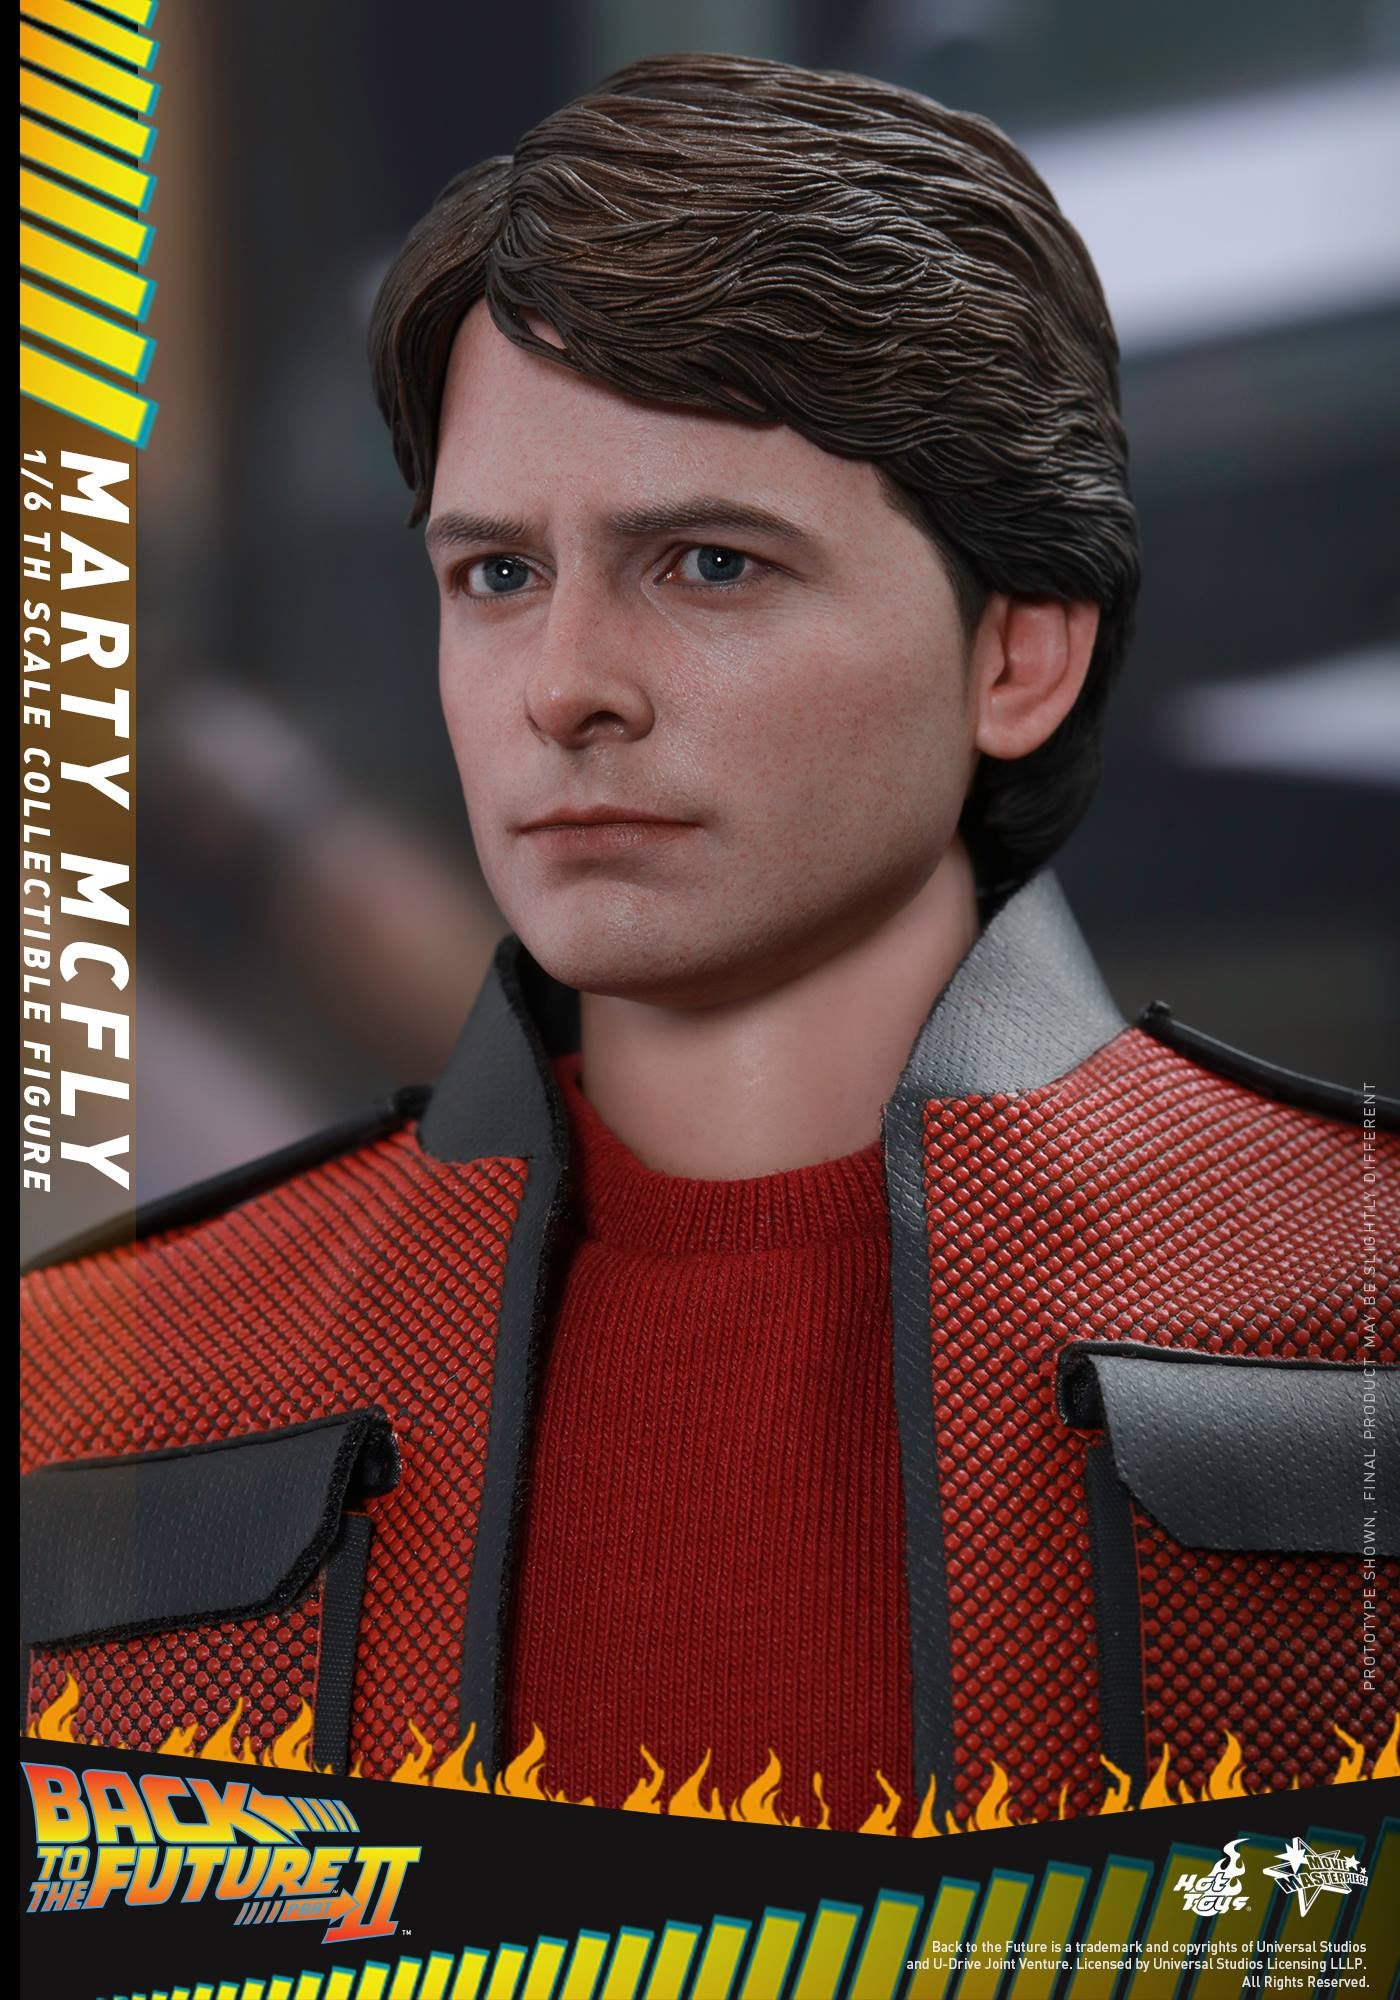 Hot Toys - MMS379 - Back to The Future Part II - Marty McFly (Normal Edition) - Marvelous Toys - 7